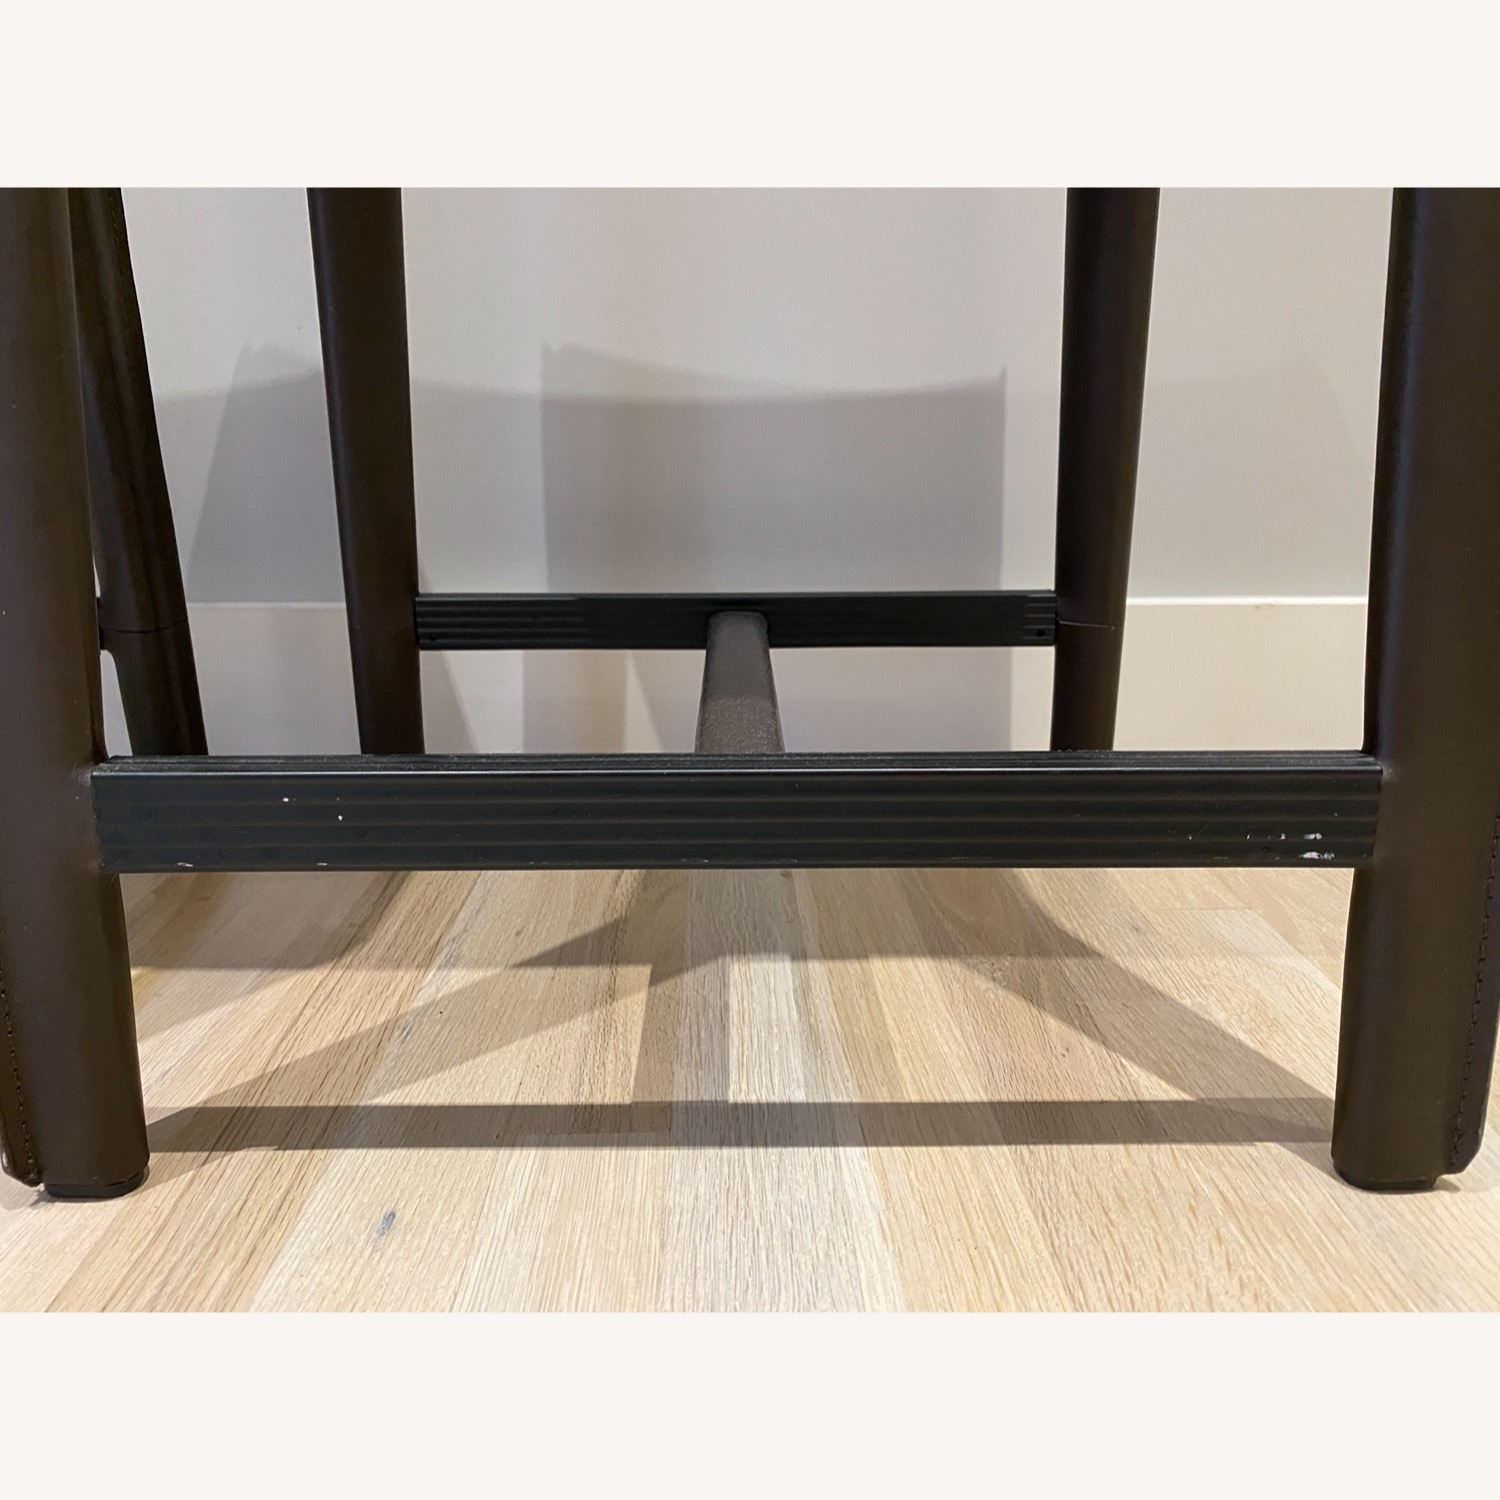 Set of Crate & Barrel Backless Counter Stools - image-7